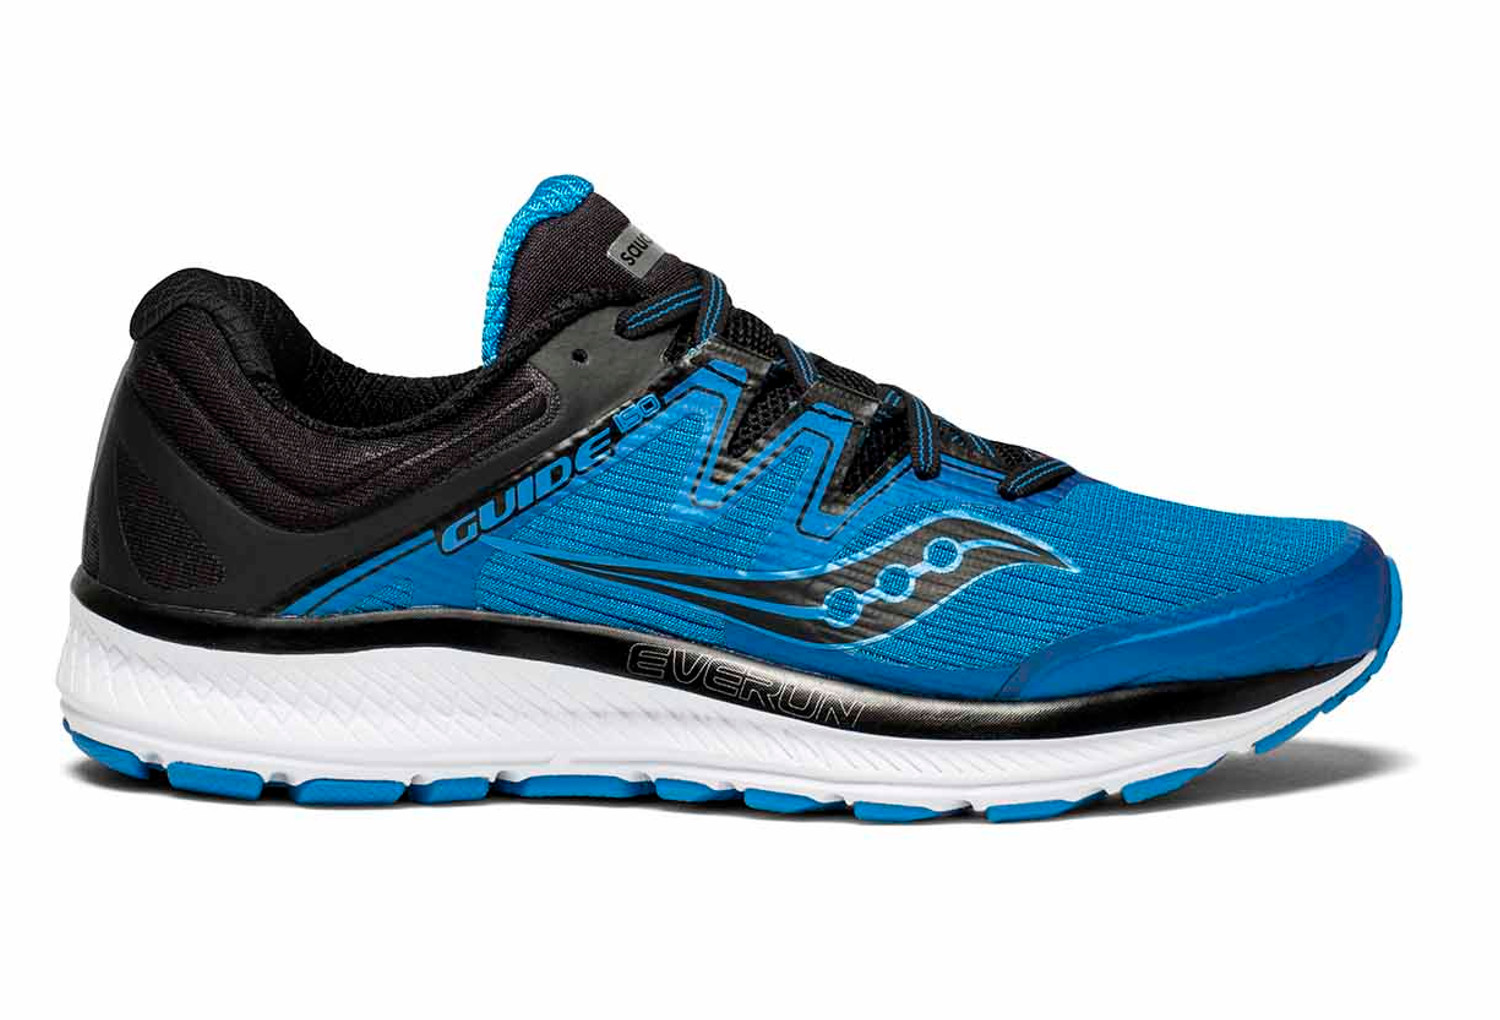 outlet. Saucony Guide Iso Shoes Blu Nero 7ddd10c51b2